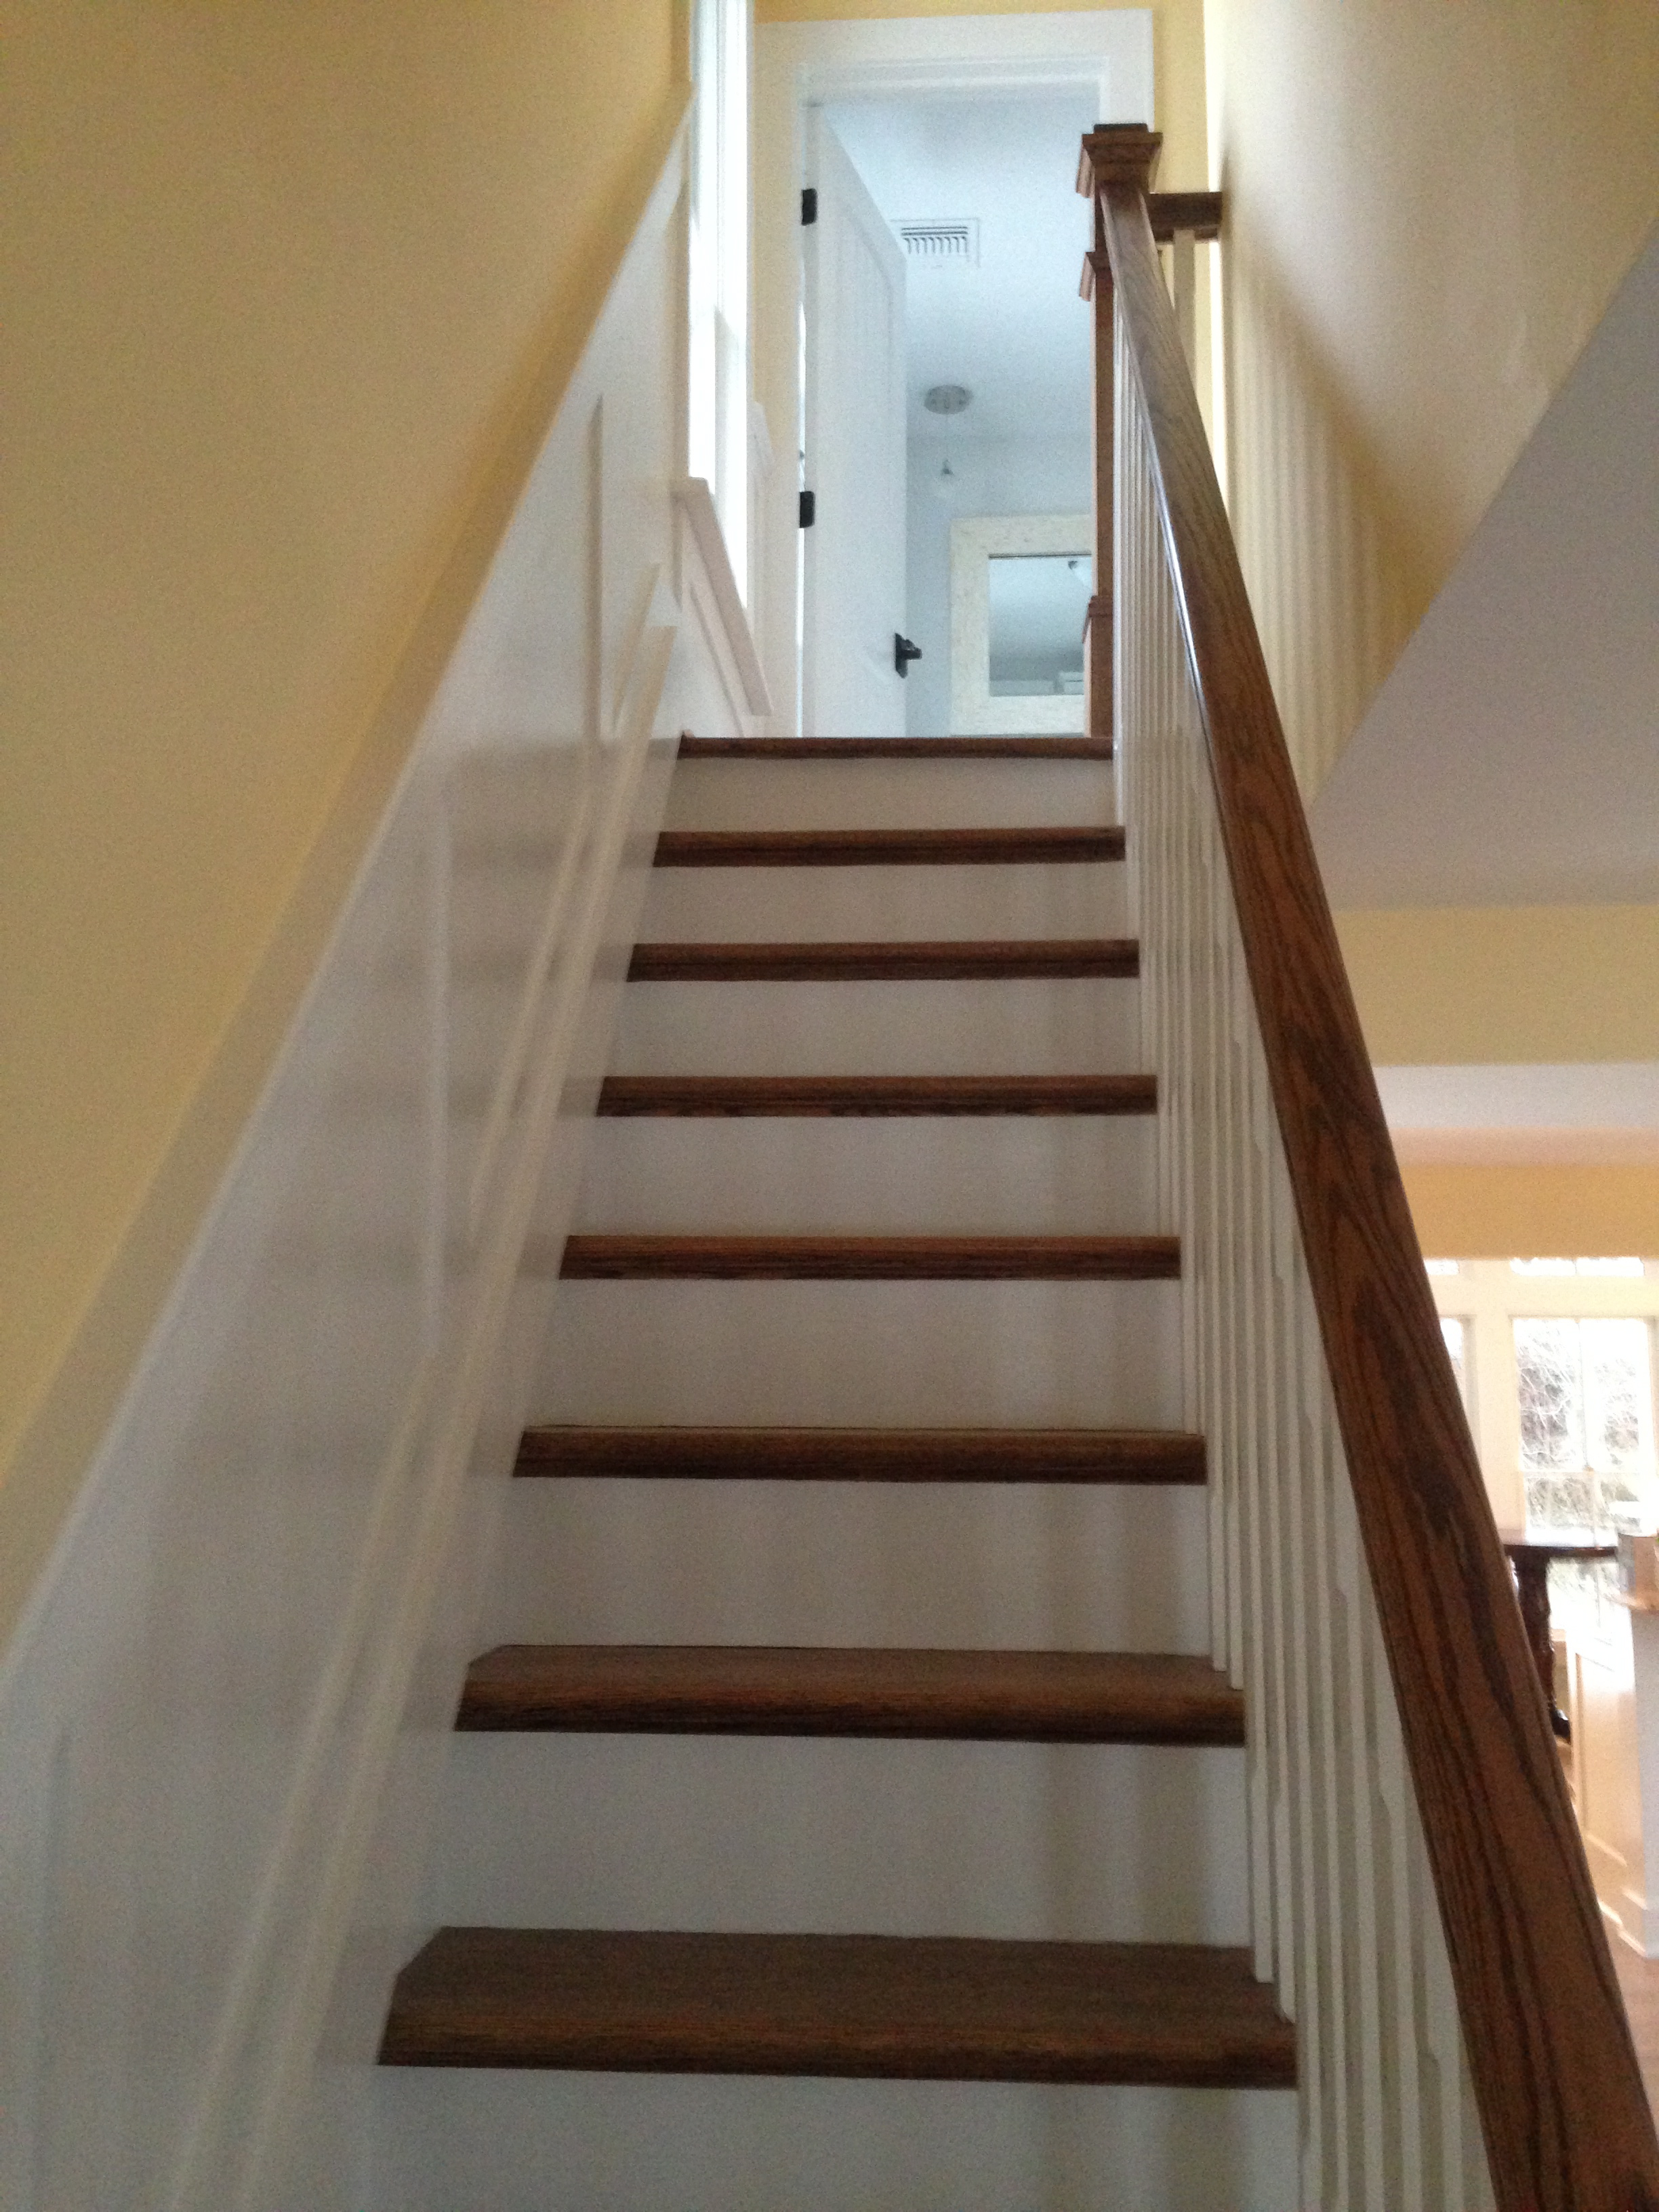 Completed stairway.